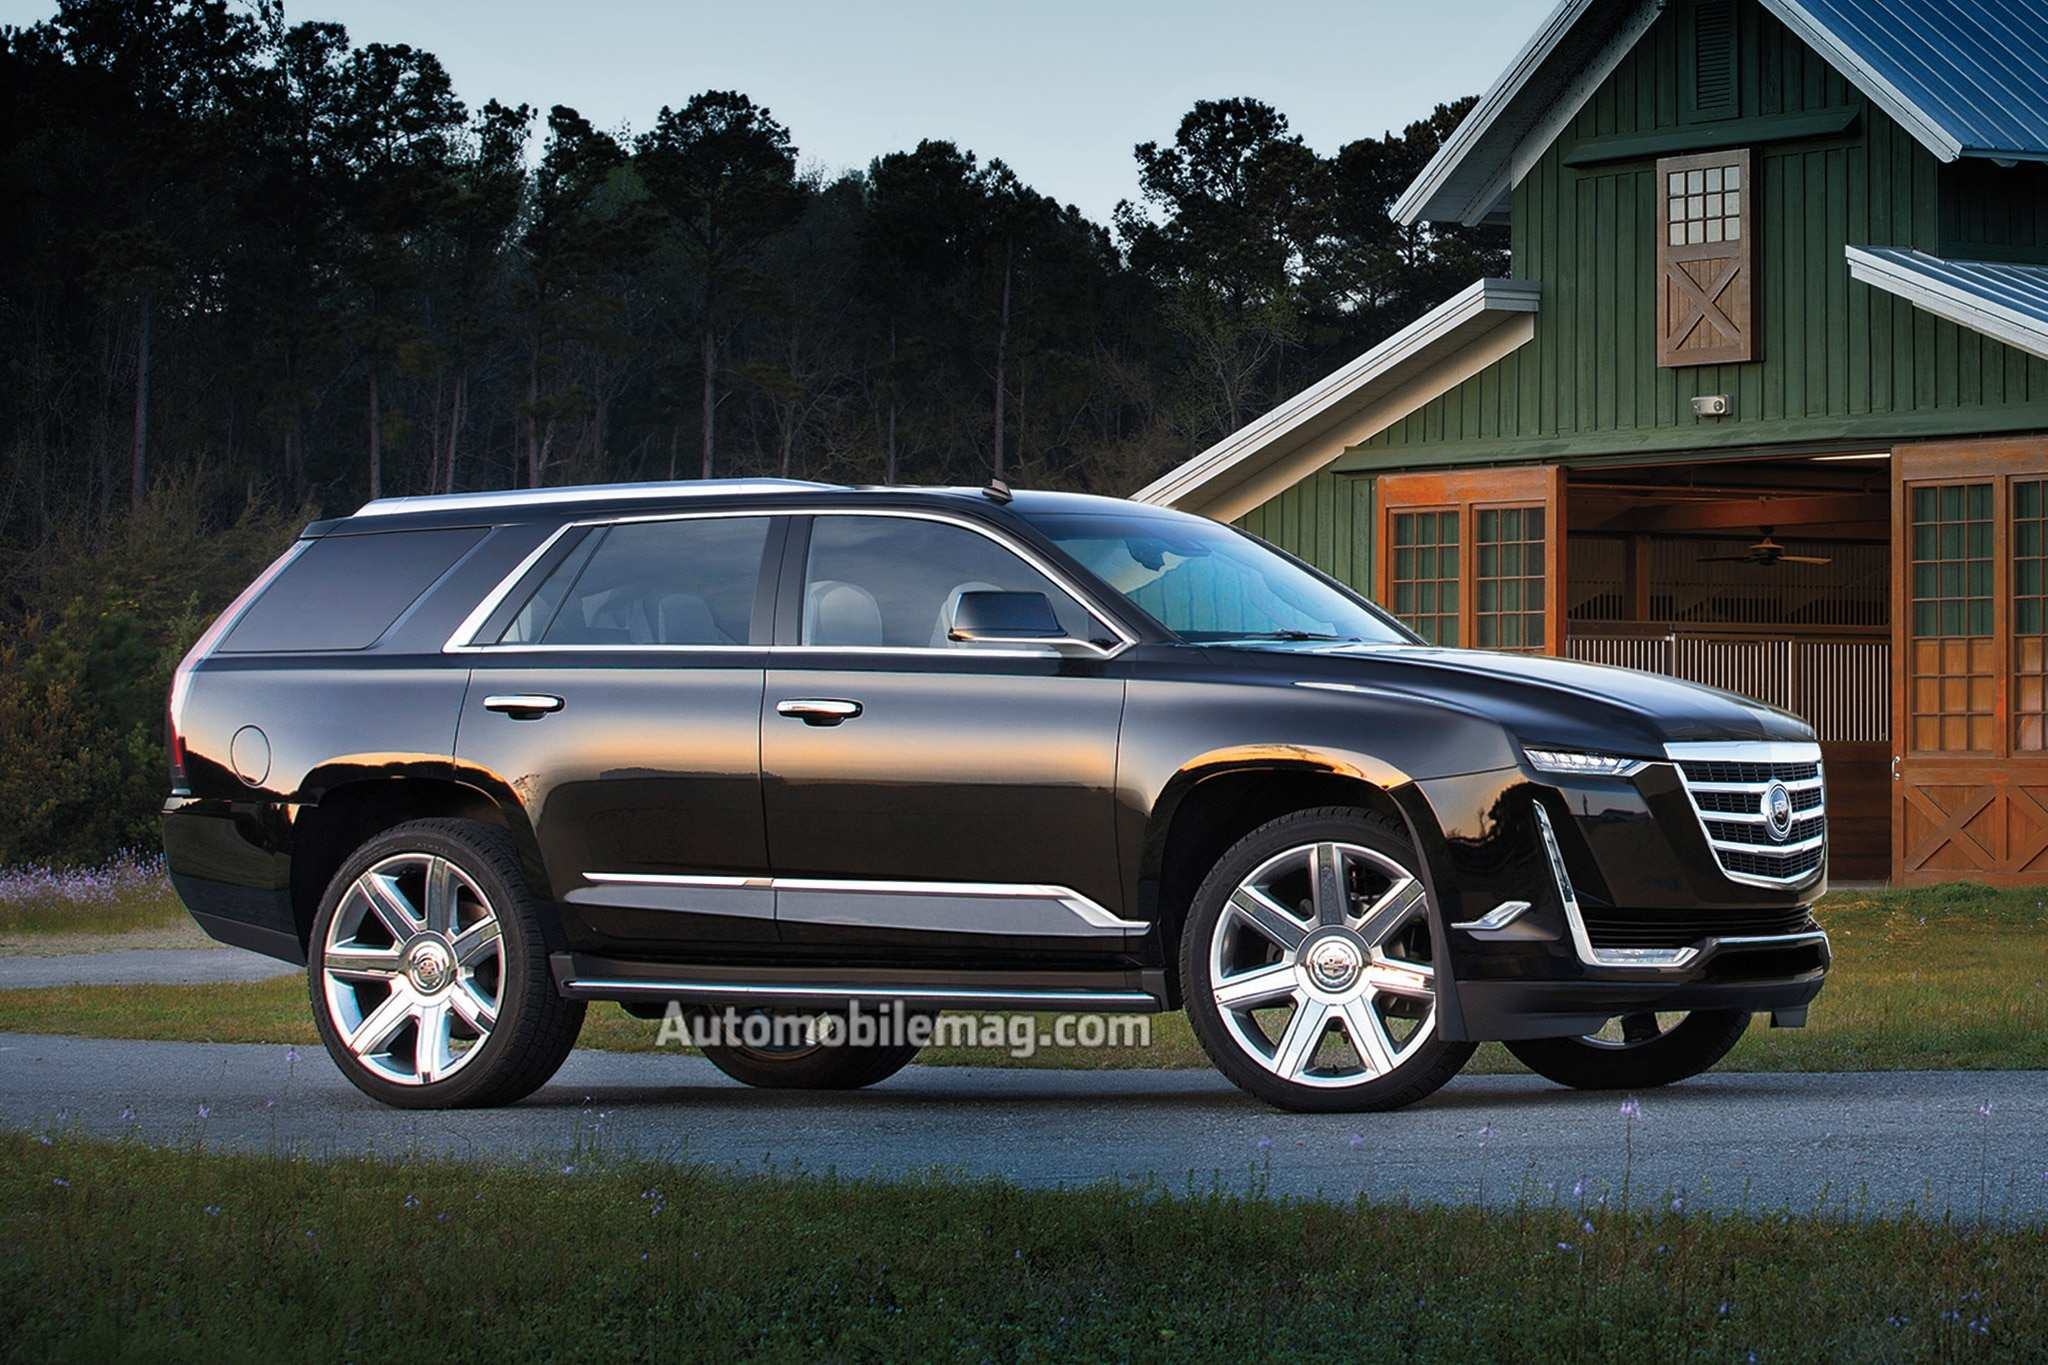 92 Best When Does The 2020 Cadillac Escalade Come Out Photos